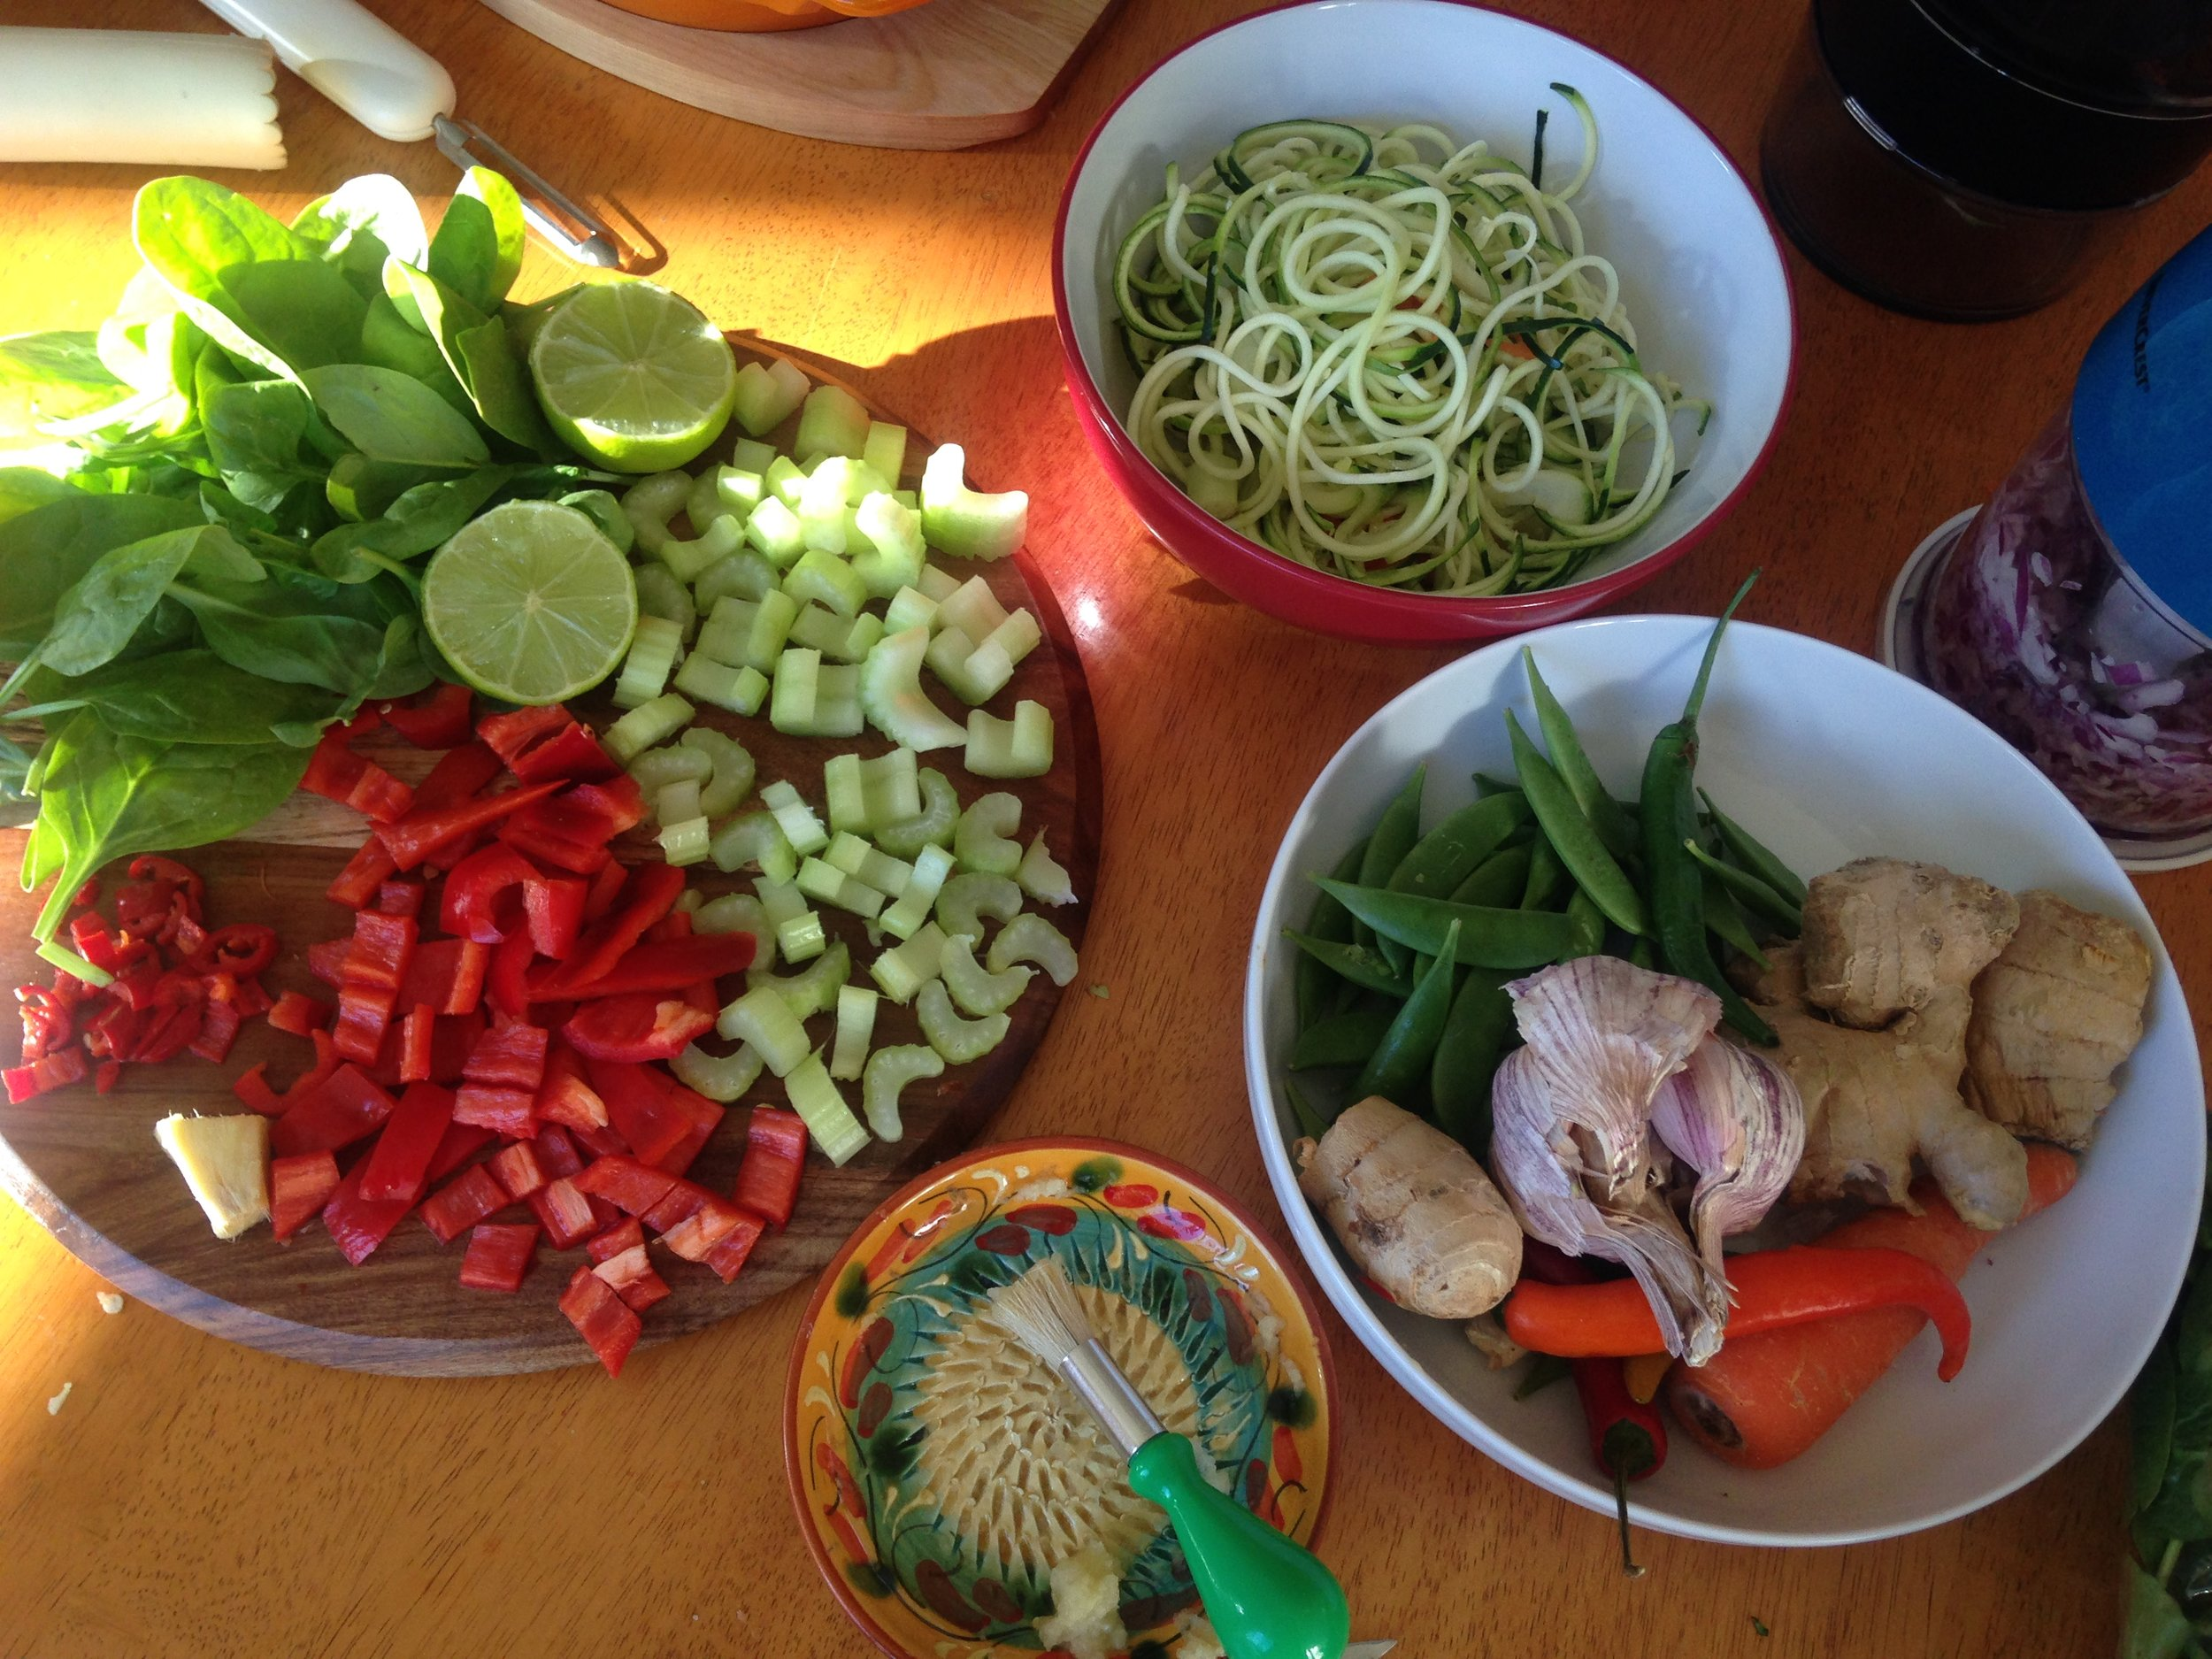 All the ingredients prepared prior to cooking.